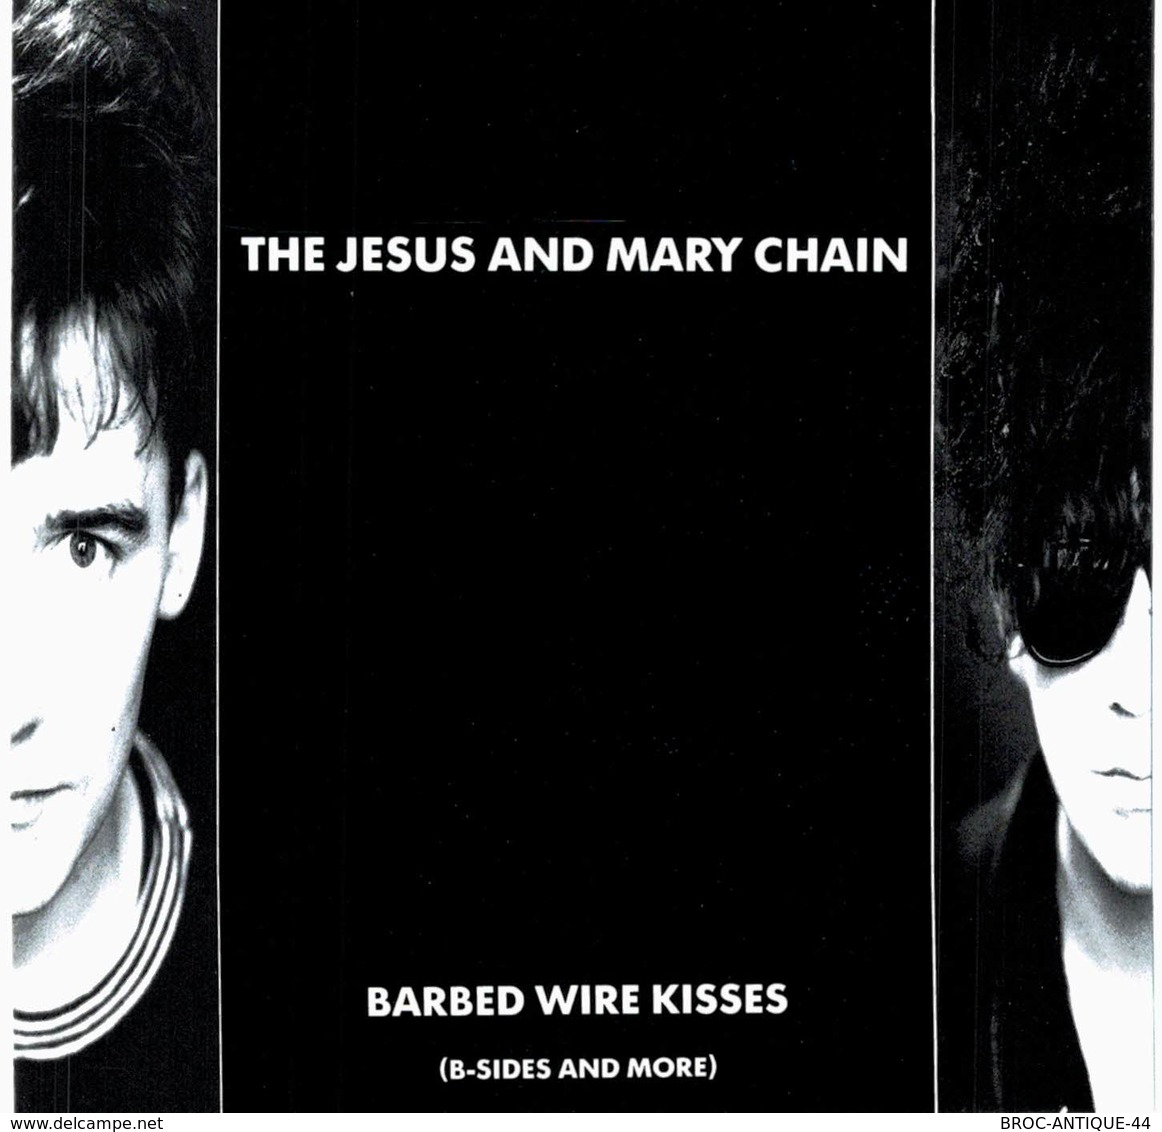 CD N°6564 - THE JESUS AND MARY CHAIN - BARBED WIRE KISSES - COMPILATION 20 TITRES - New Age